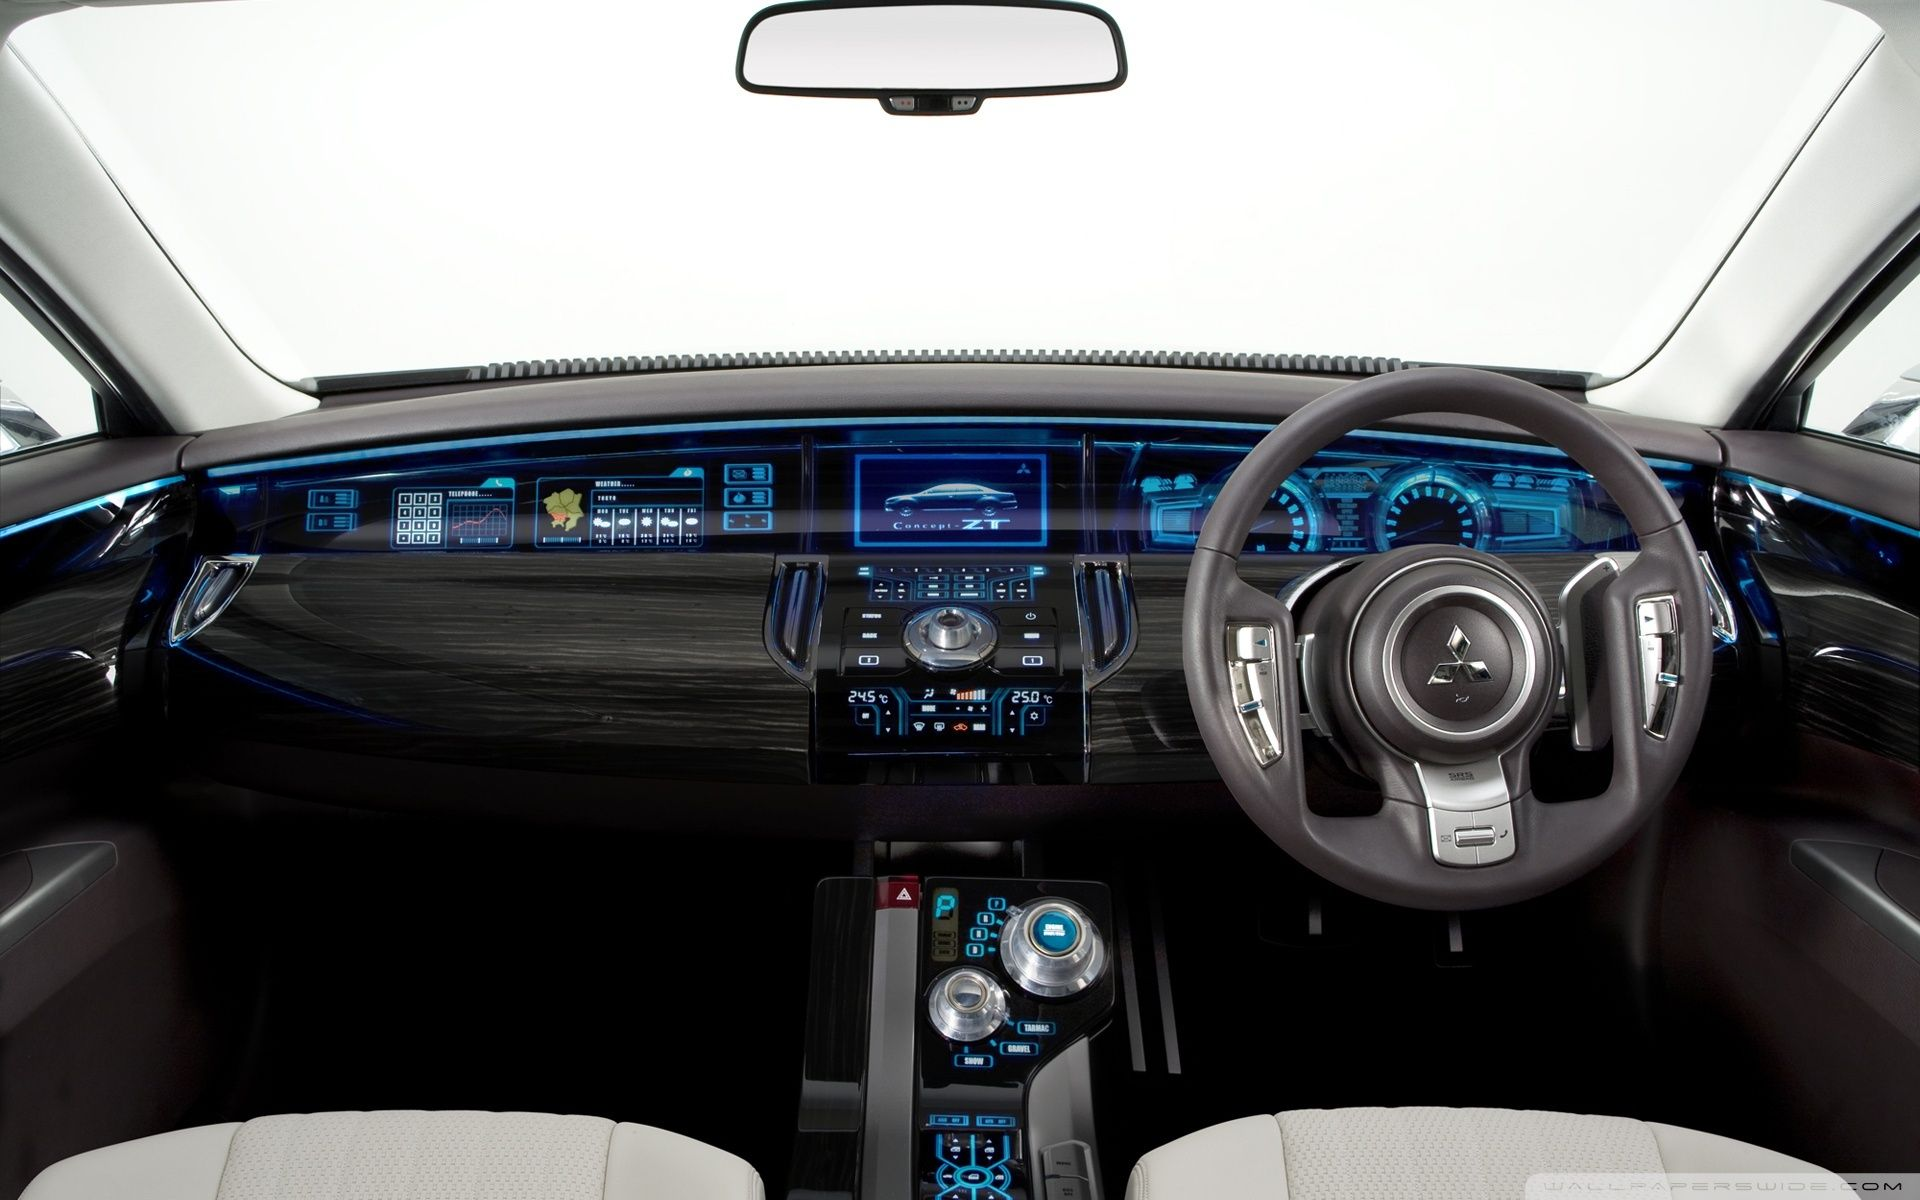 WallpapersWide.com | Car Interiors HD Desktop Wallpapers for ...